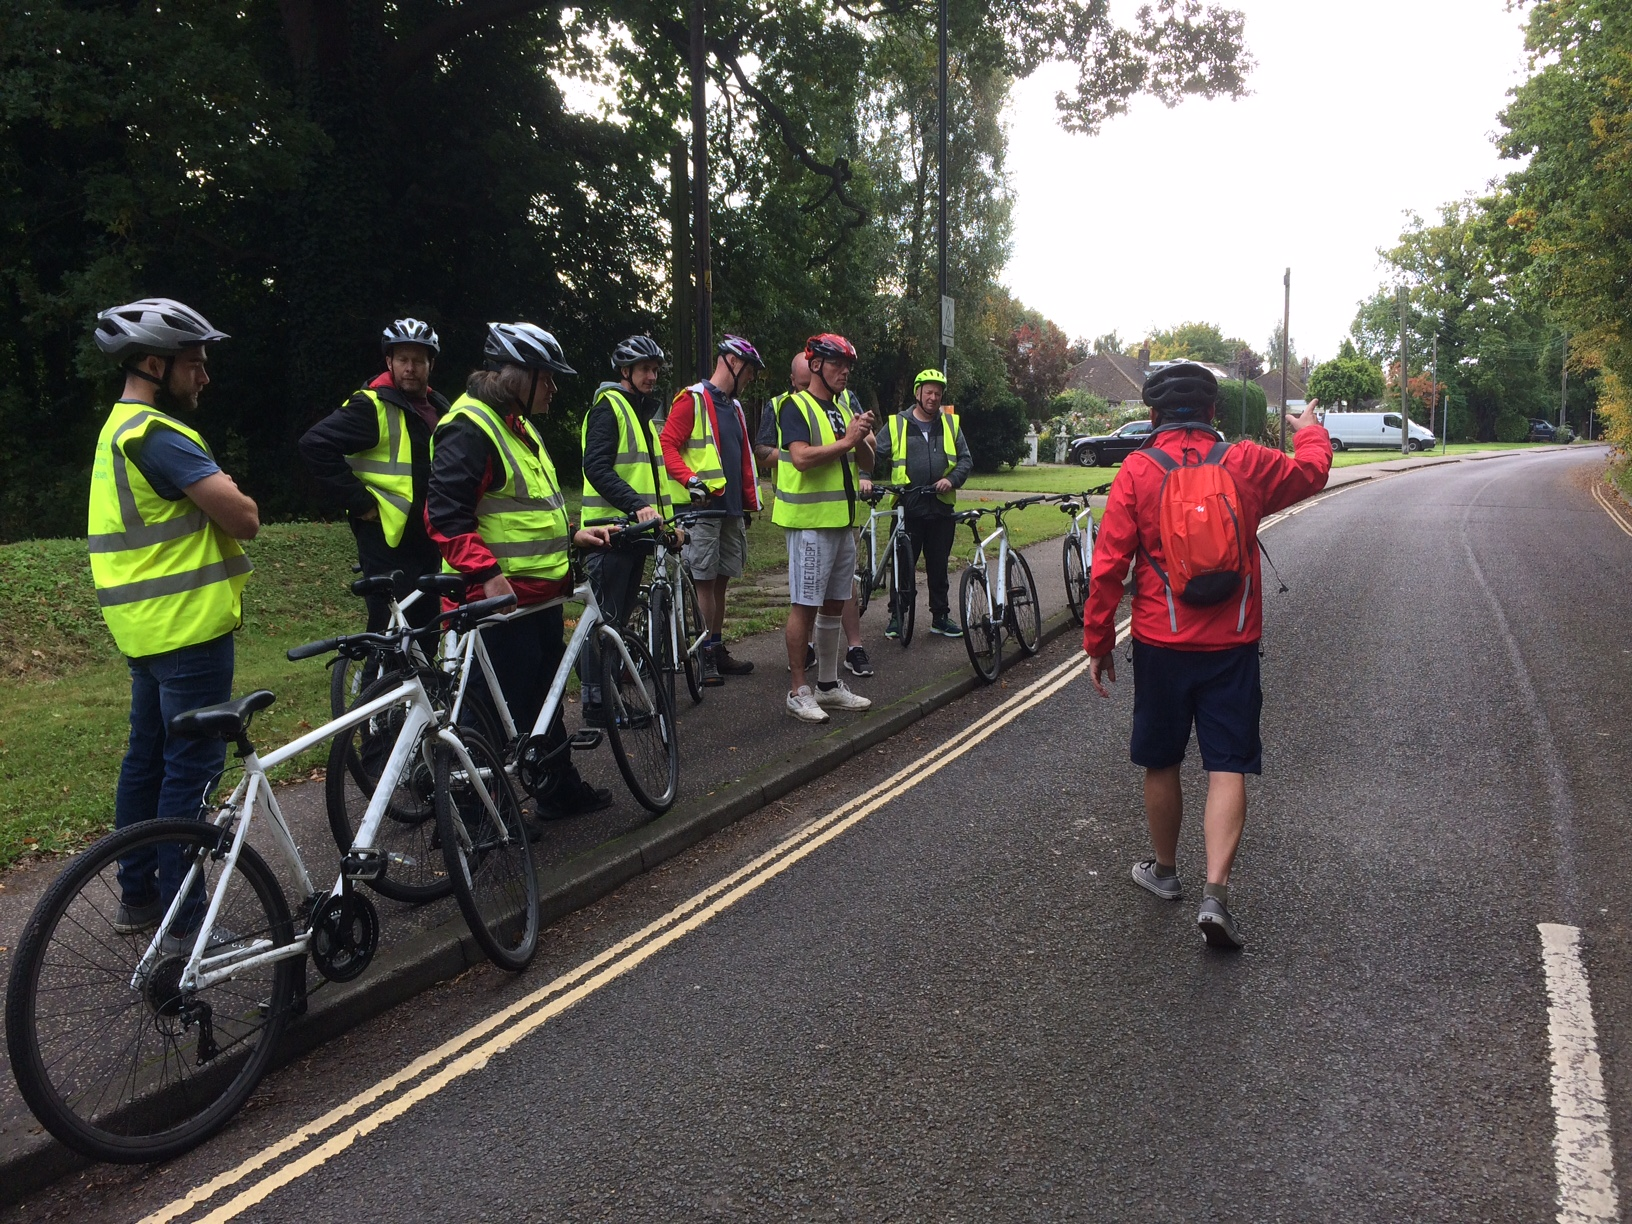 Eezehaul drivers go out on bikes to learn how to share the road safely